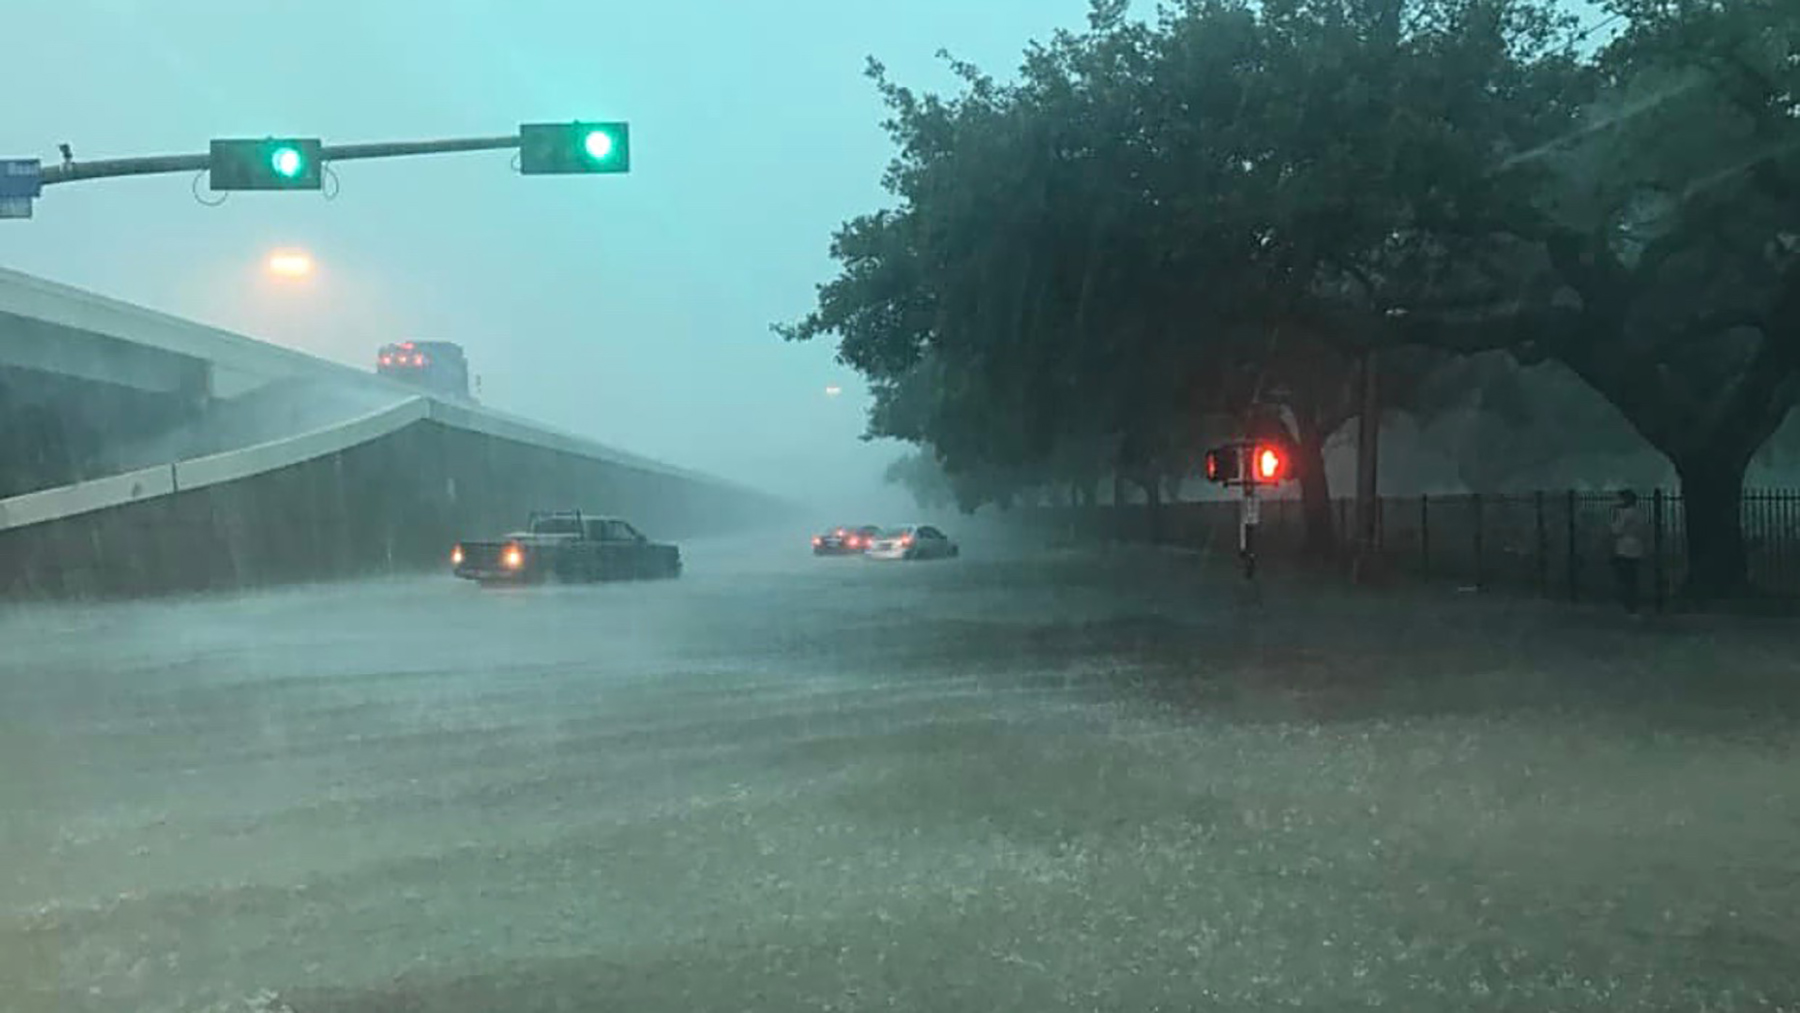 Flooding from Tropical Storm Imelda deluges roadways near HOPE Clinic's newly opened center in Aldine, Texas. Many health providers were still recovering from Hurricane Harvey when the latest round of flooding occurred. (Photo courtesy of HOPE Clinic)